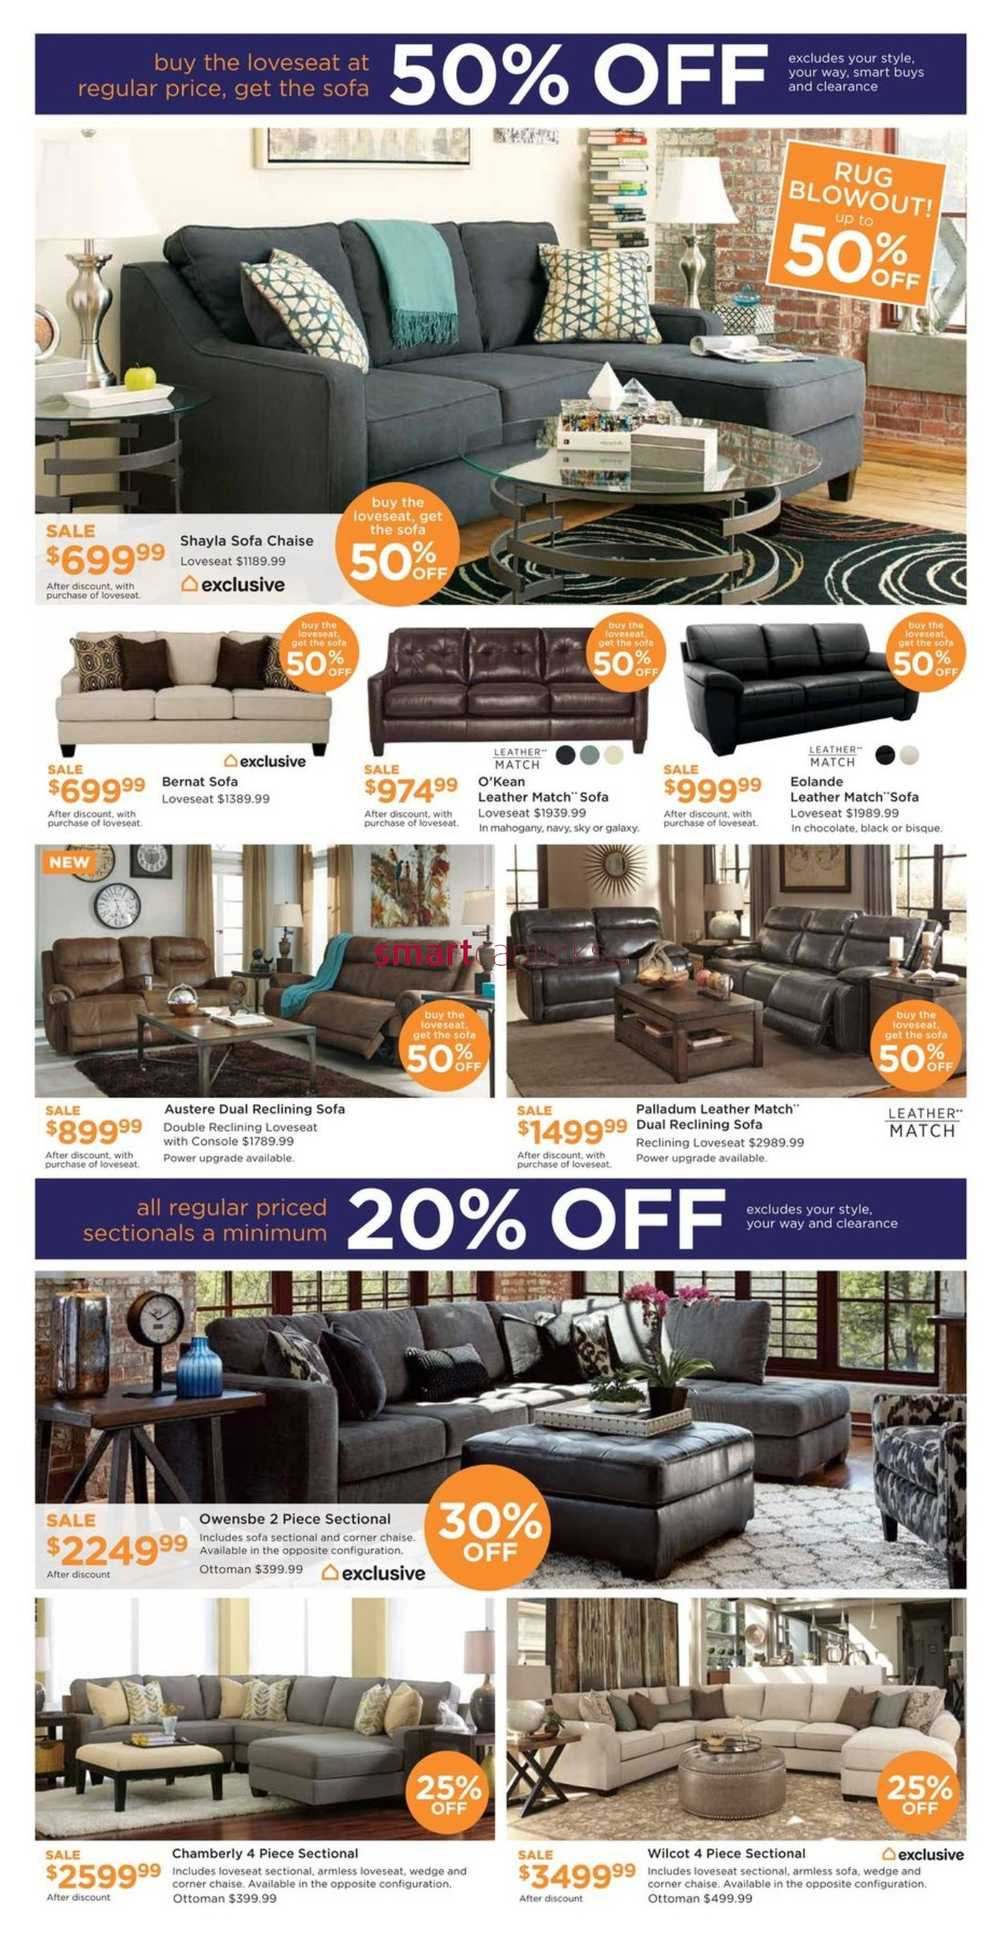 Ashley homestore west flyer february 24 to 26 for Ashley homestore canada